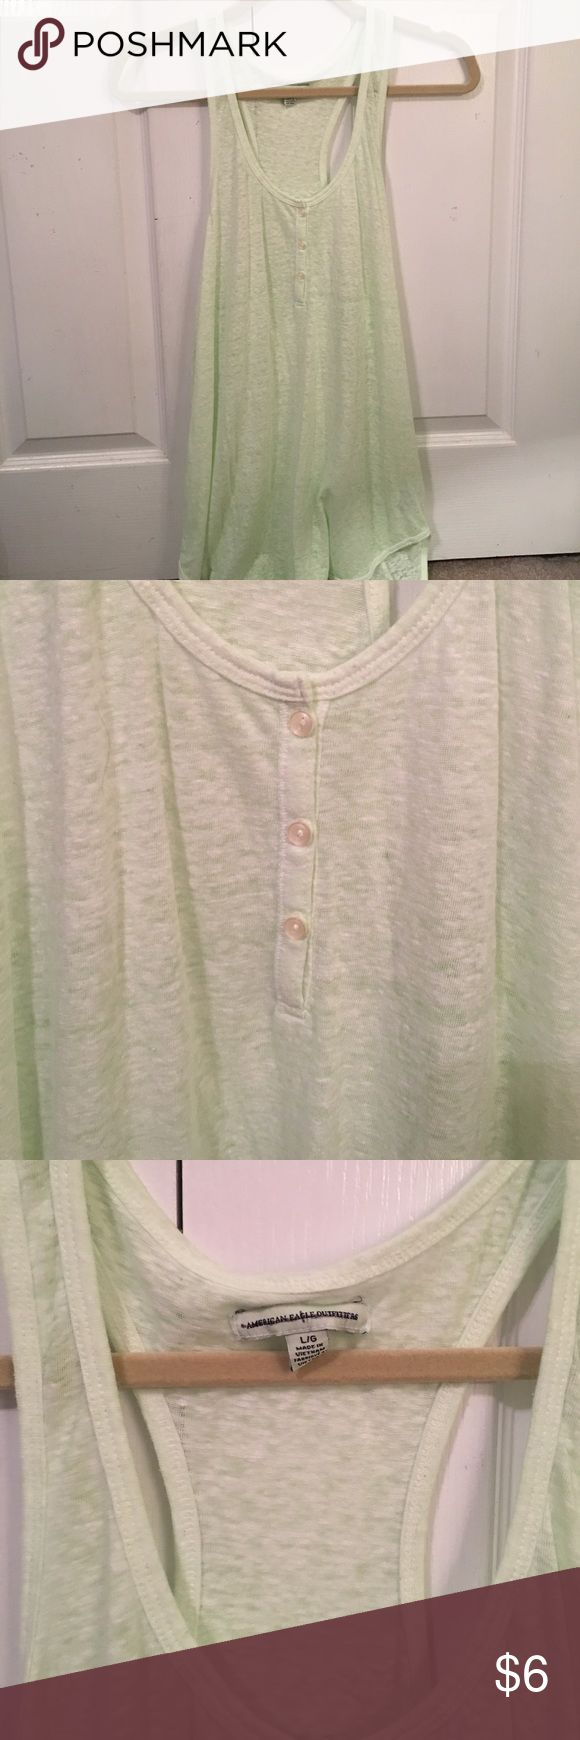 American Eagle Tank Top Light green American Eagle tank top. Very cute for summertime with some jeans shorts. Never worn. 💚 American Eagle Outfitters Tops Tank Tops